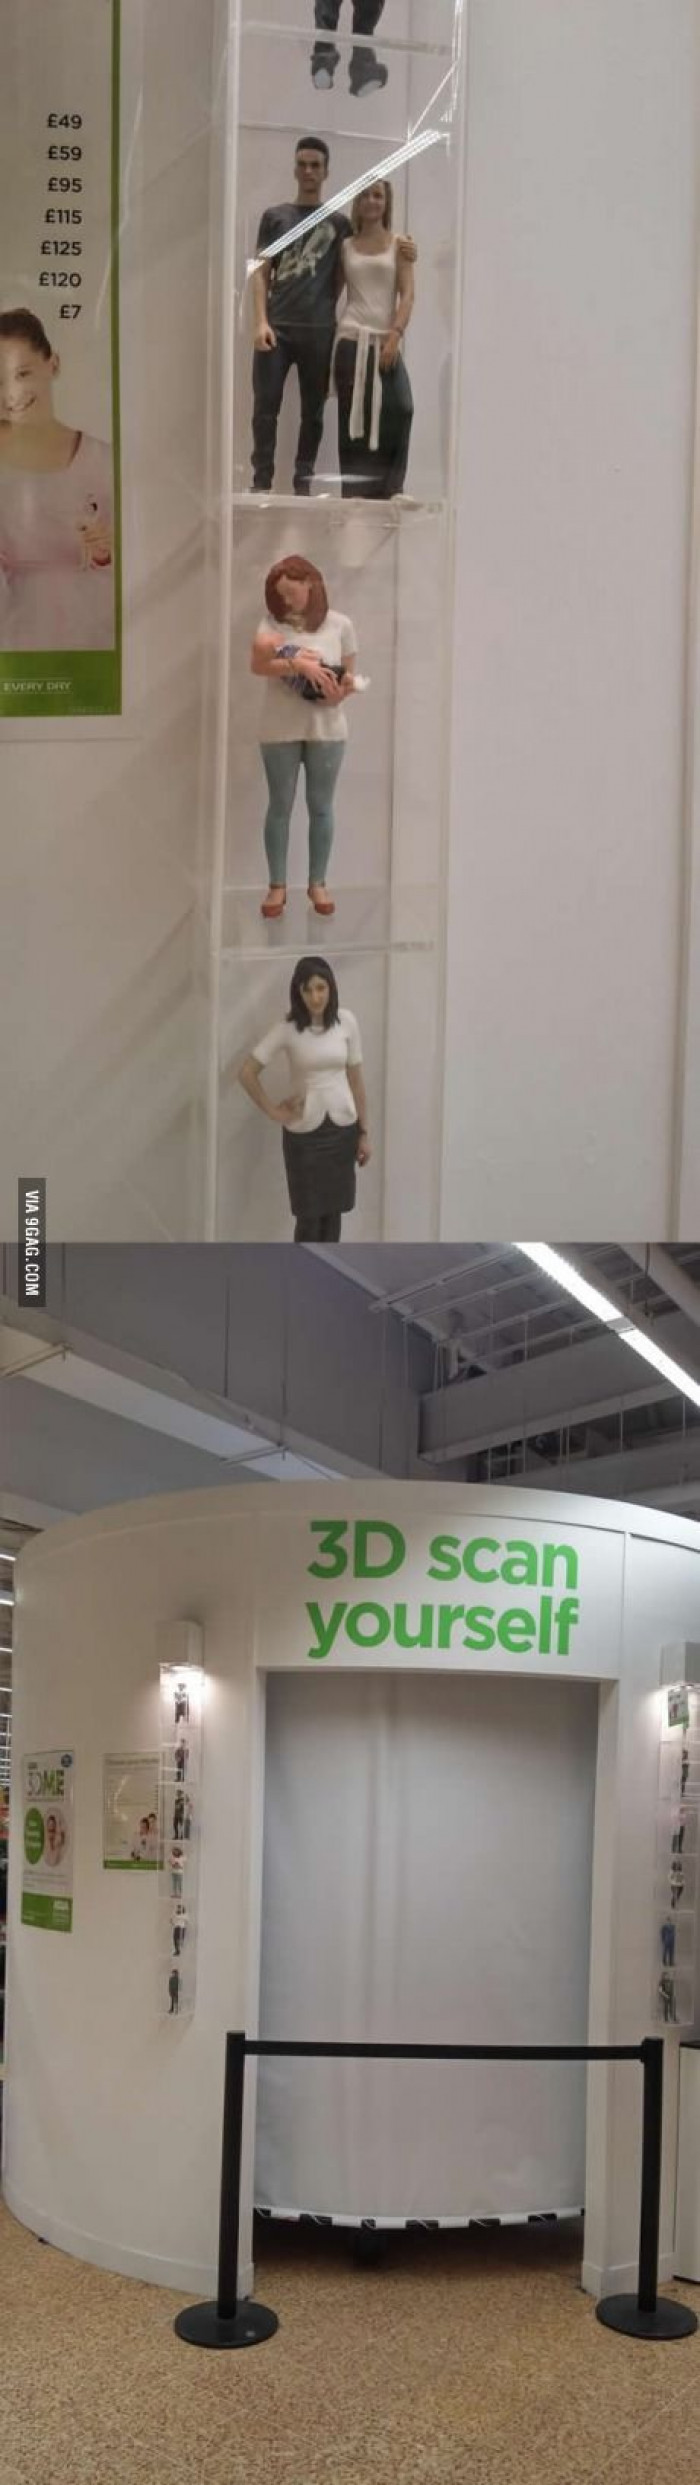 This Supermarket Lets You 3D Print Yourself